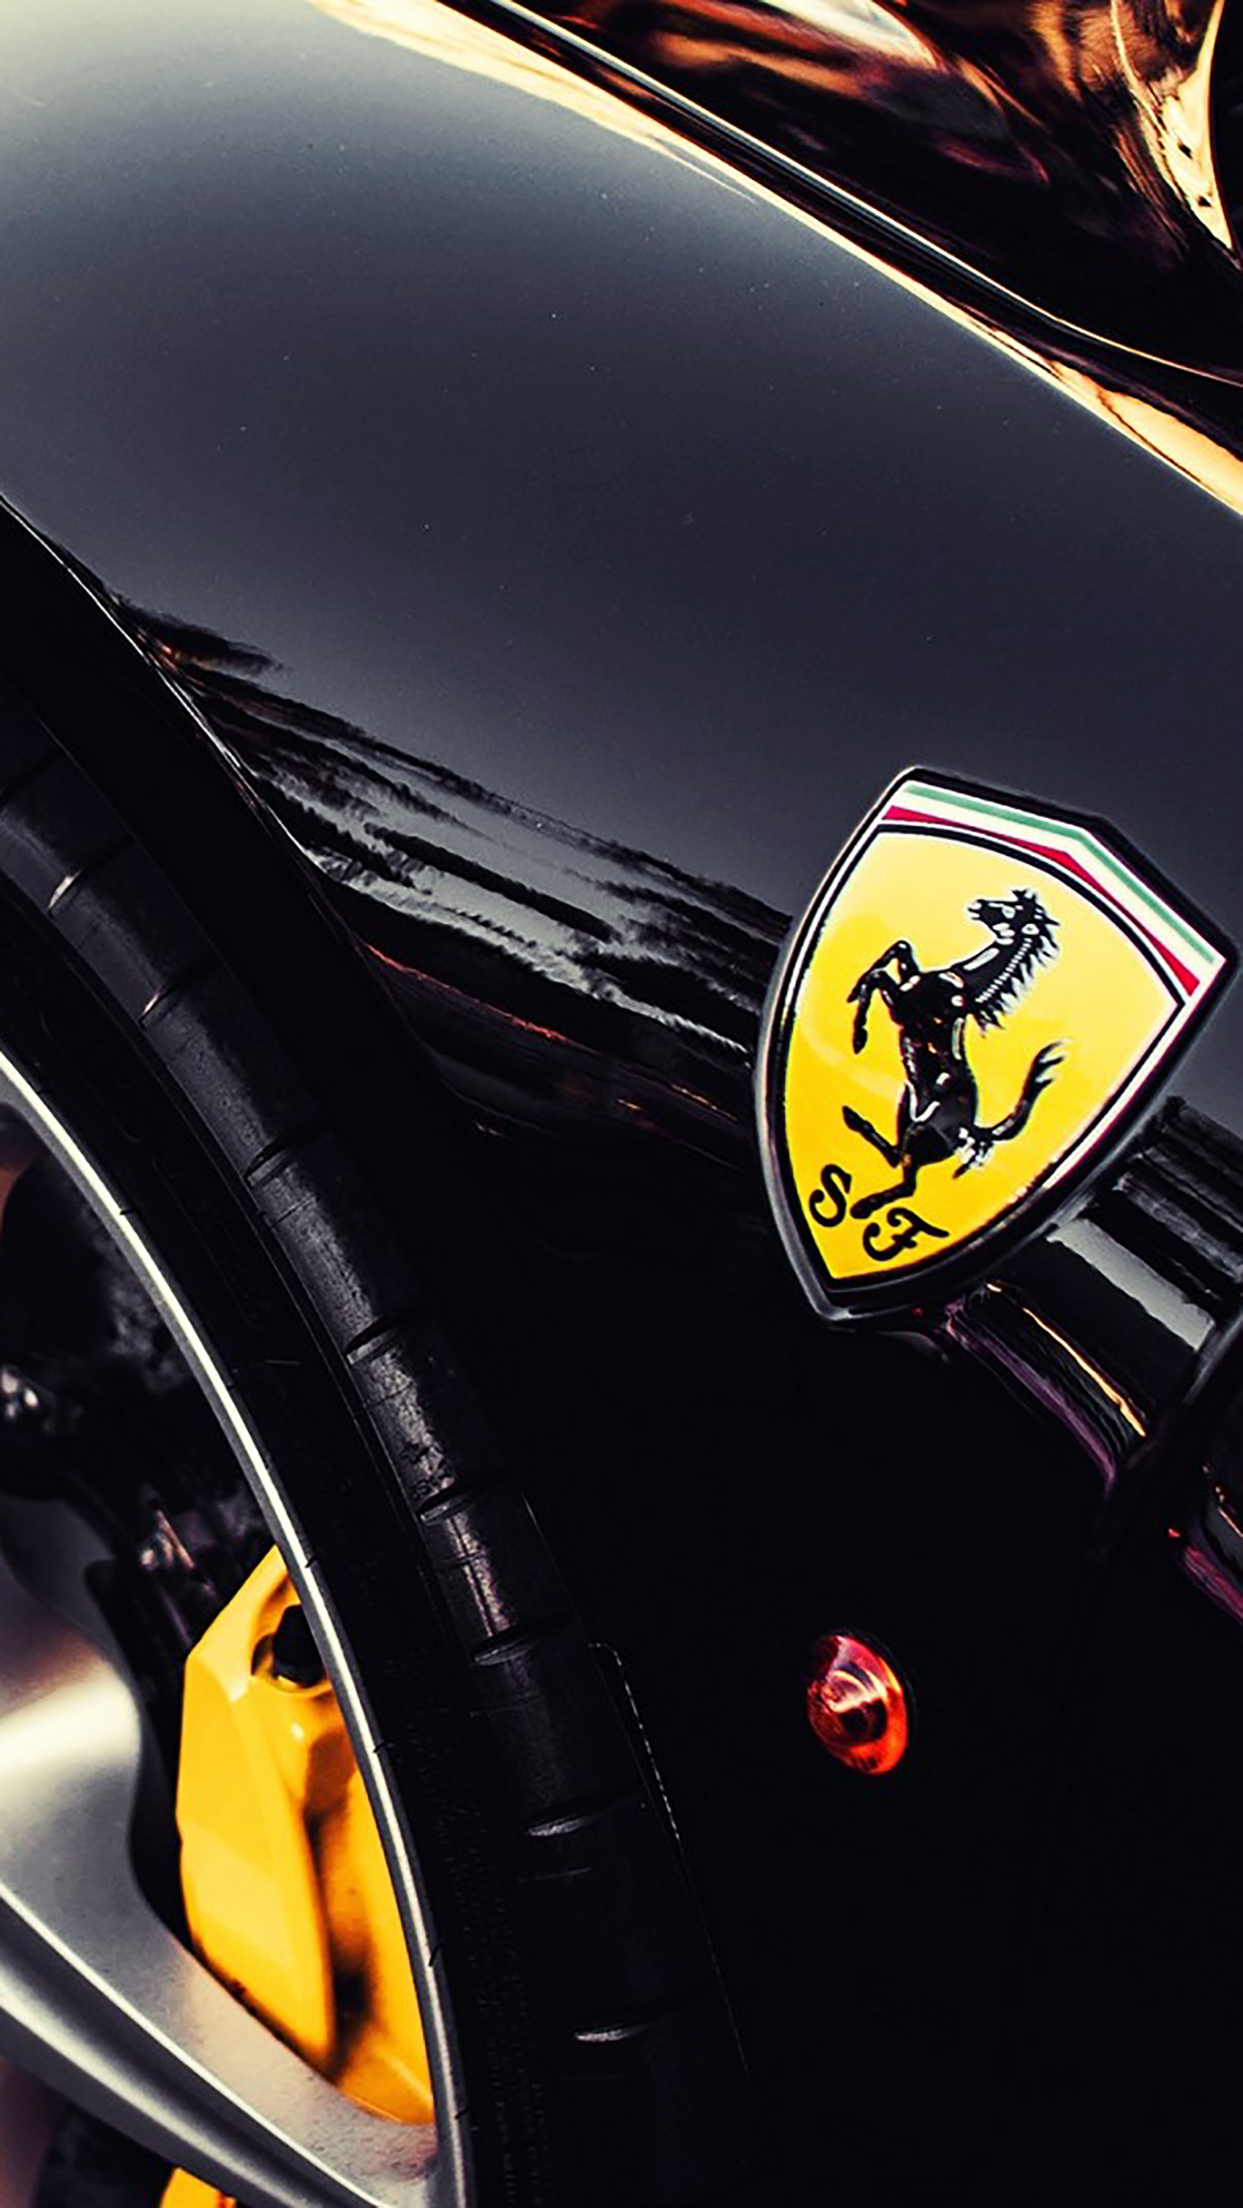 ferrari-logo-and-wheel-3wallpapers-iphone-parallax